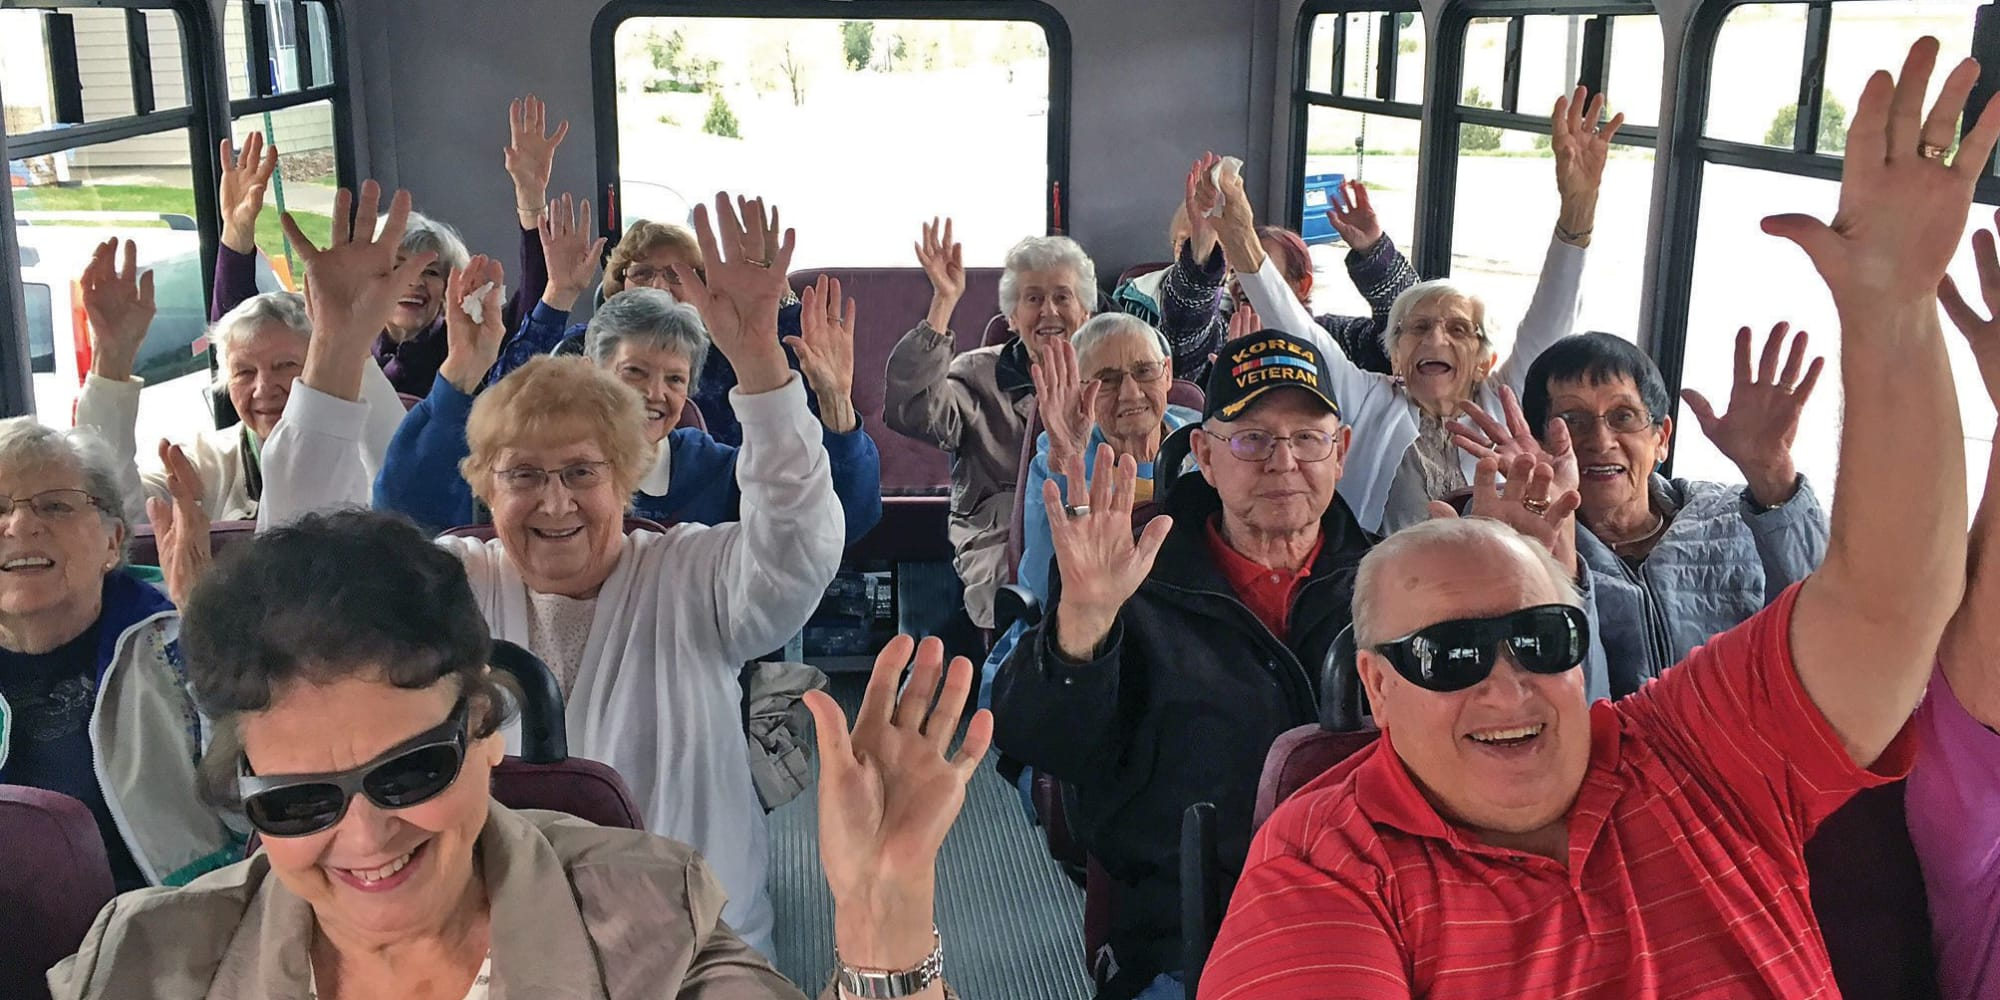 Resident from Summit Glen in Colorado Springs, Colorado with their hands up in the community bus